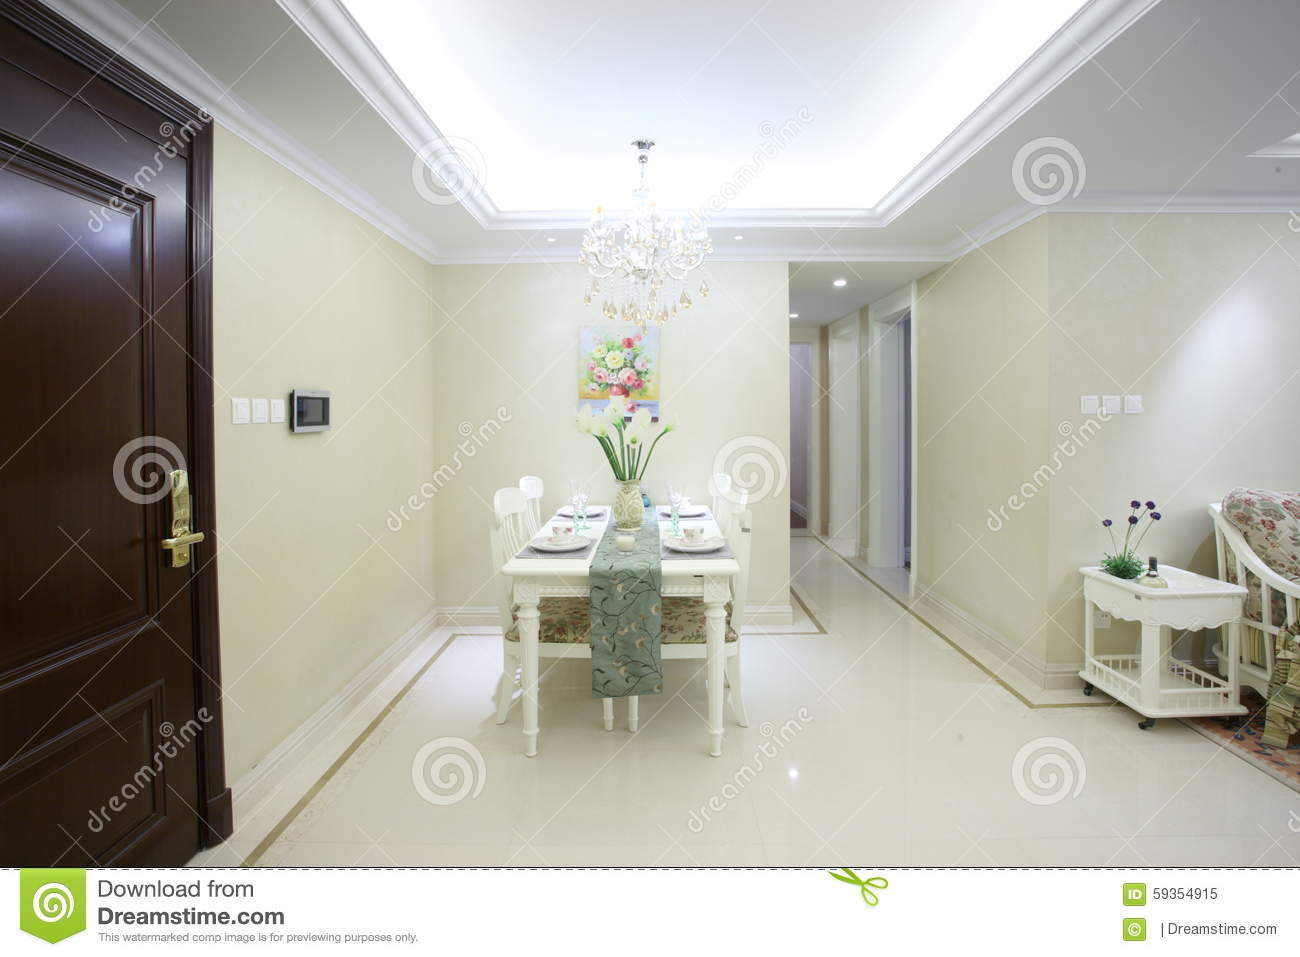 Home Categories: Home Interior Stock Image - Image of home ...